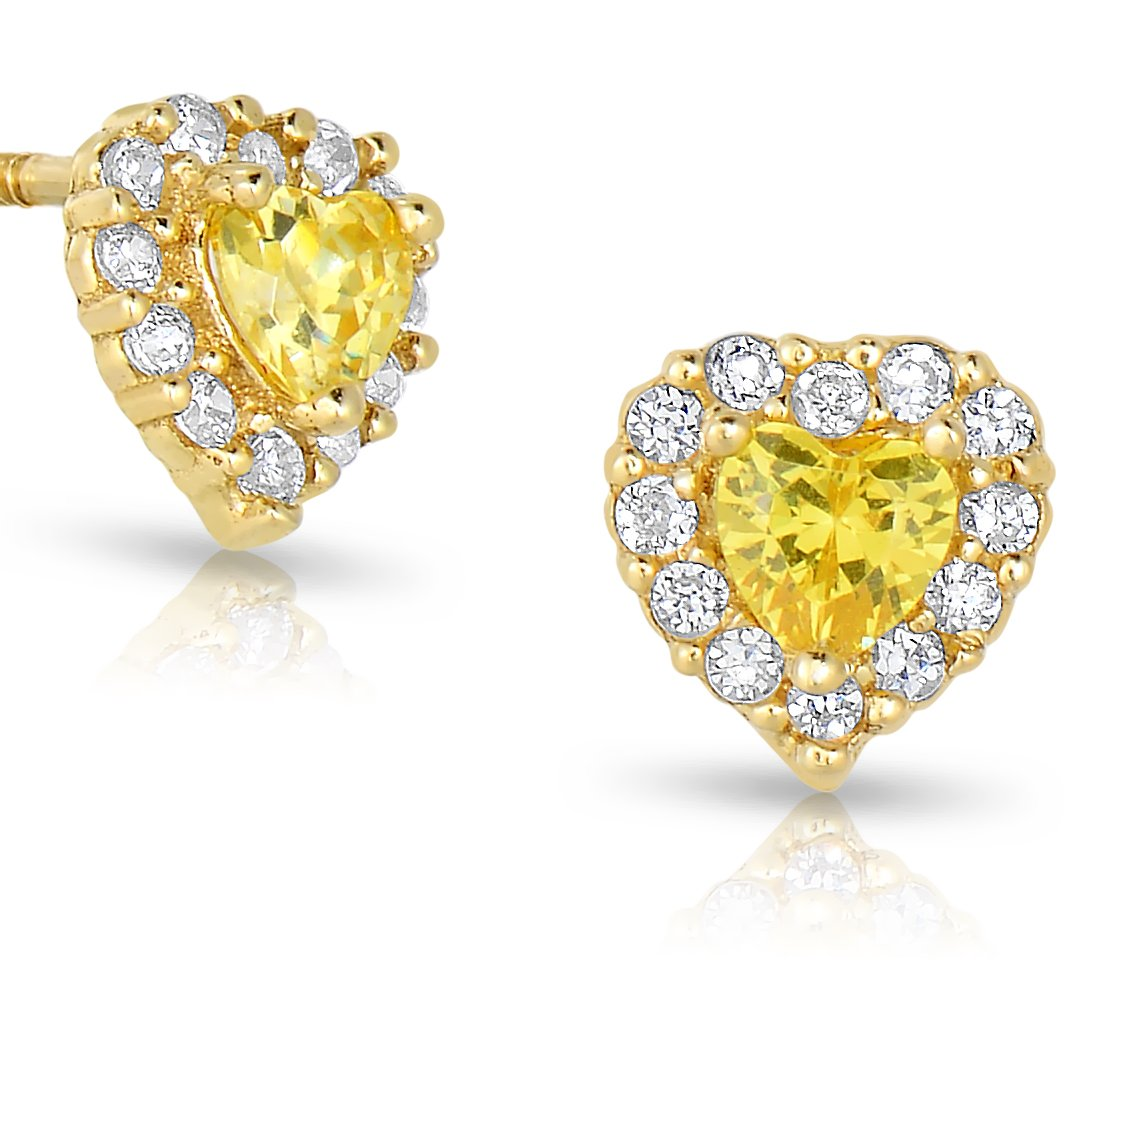 Tiny 14k Yellow Gold Heart Stud Earrings Cubic Zirconia Birth Month with Screw Backs (November)